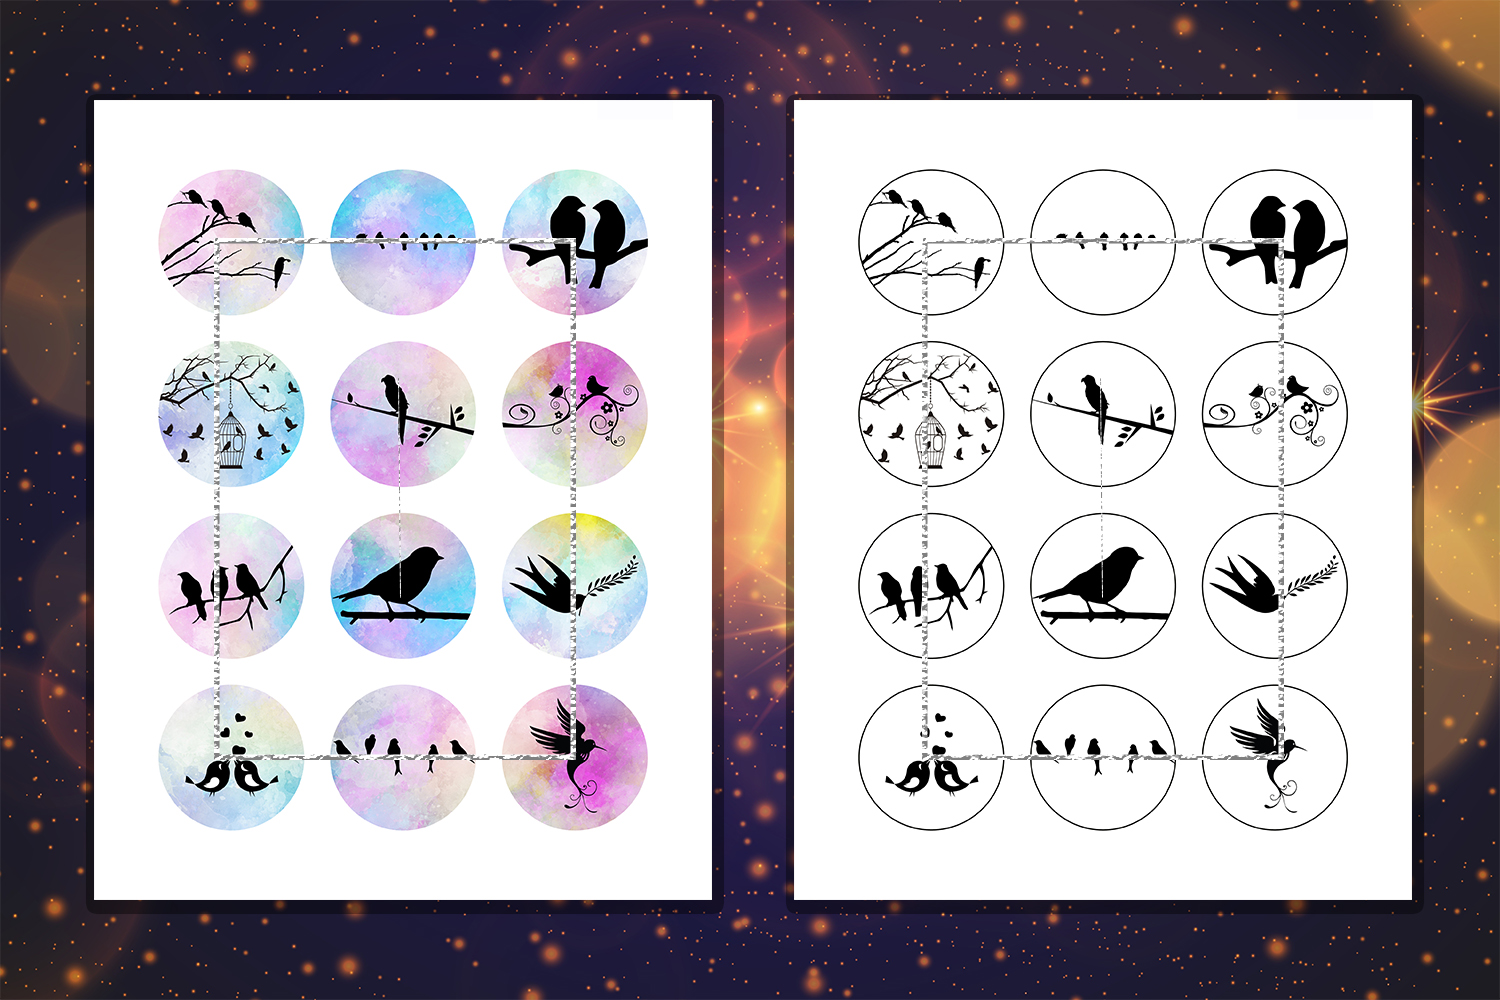 Birds Silhouette,Circle for Earrings,Printable Images example image 2